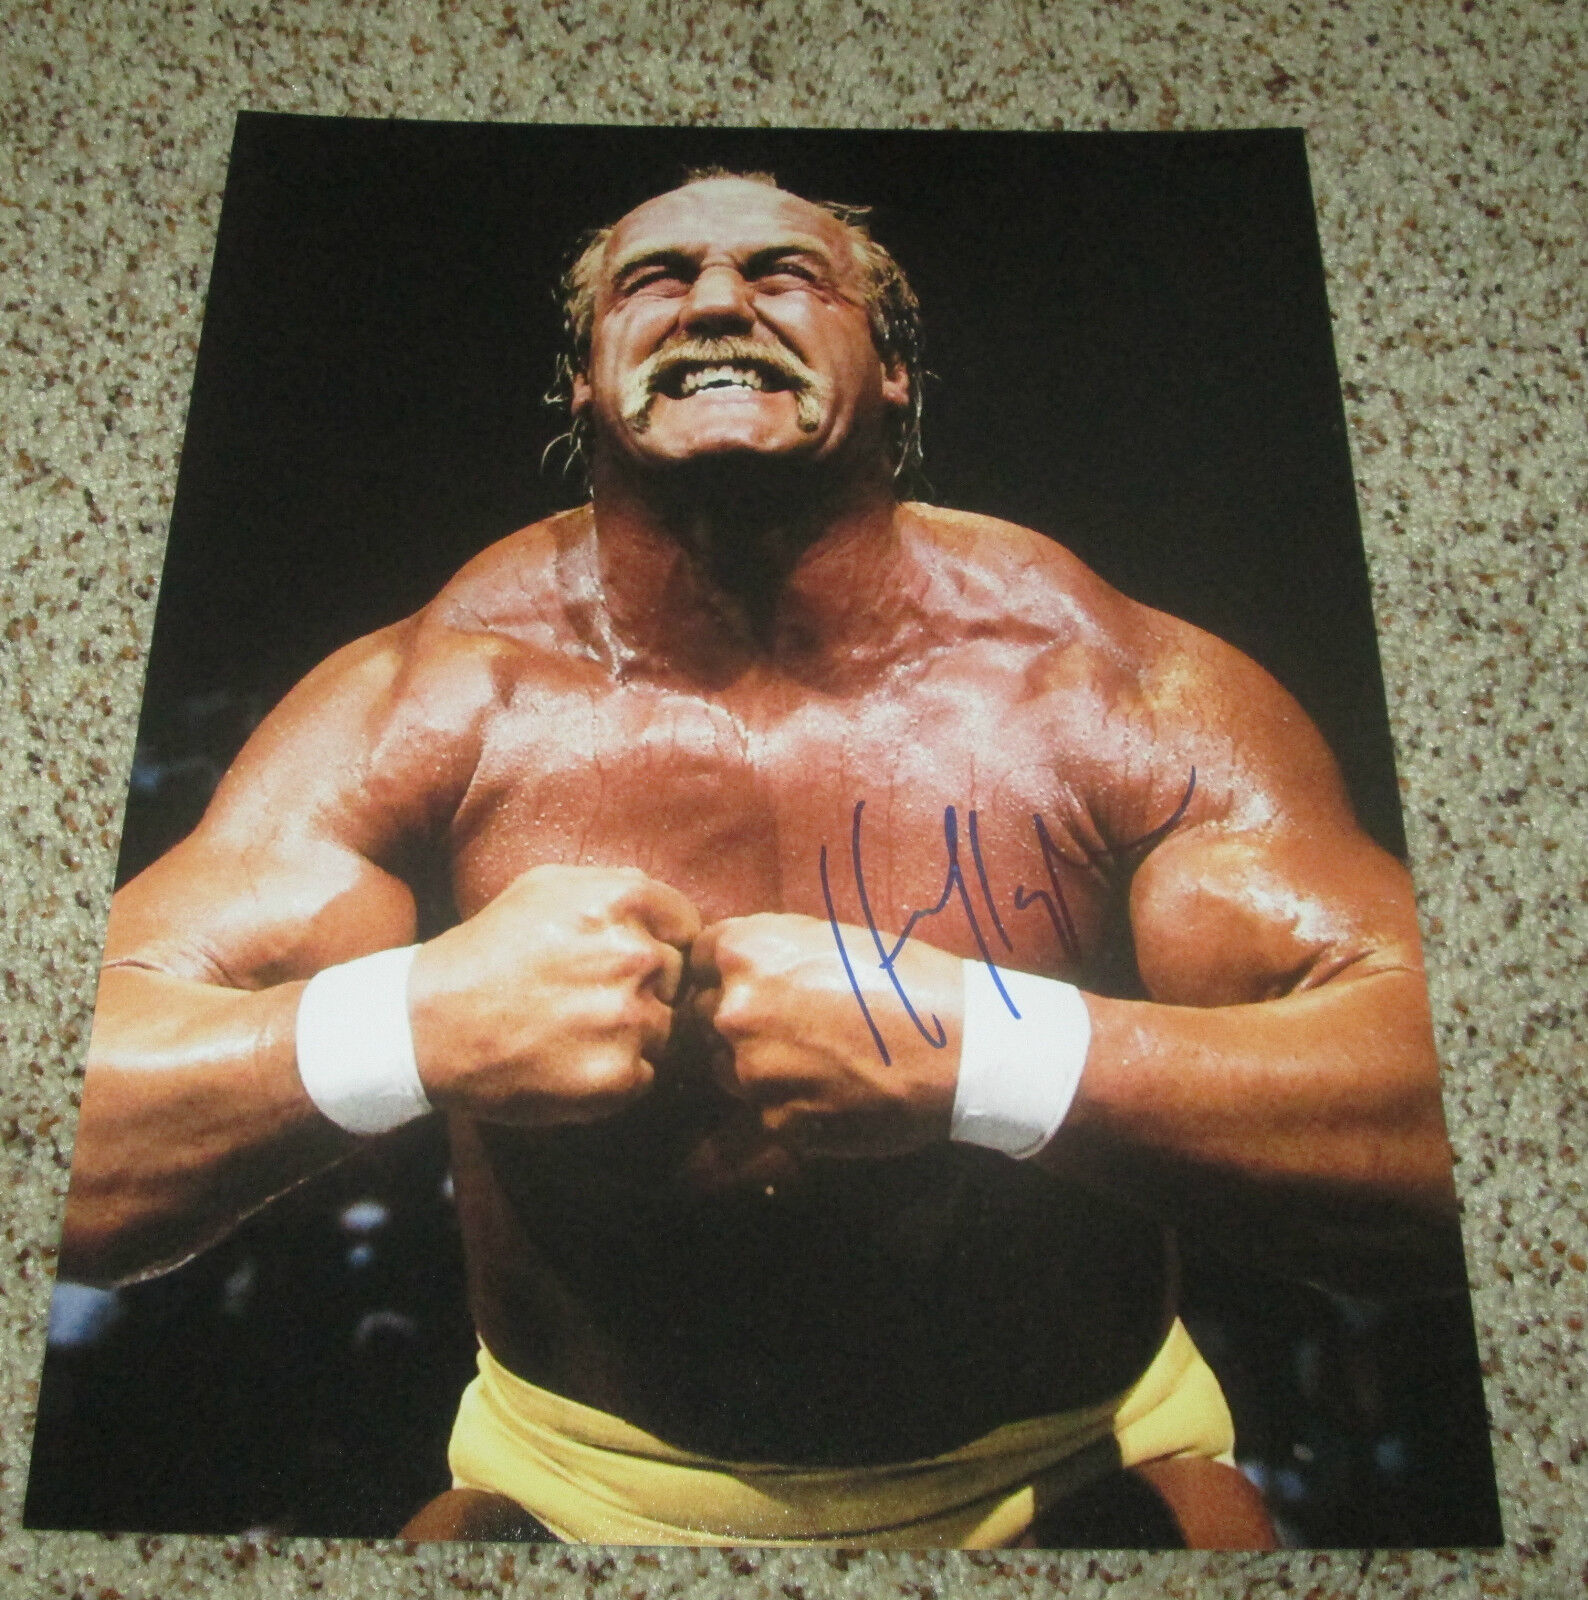 Wwe tna jeff hardy autographed 11x14 photo auto signed autograph - Hulk Hogan Signed 11x14 Wwe Photo Hulkmania With Proof